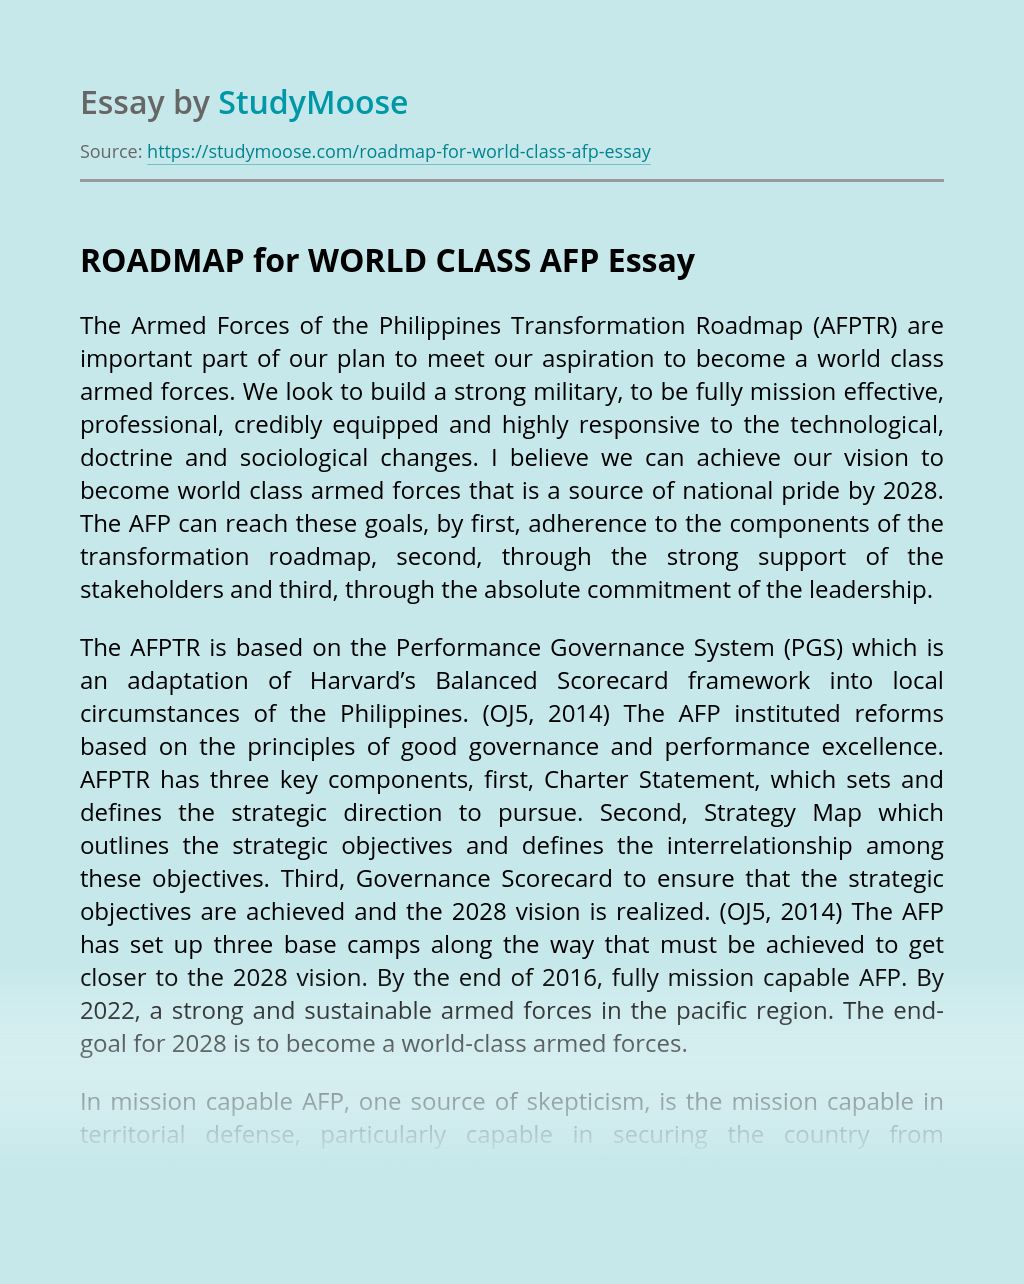 ROADMAP for WORLD CLASS AFP